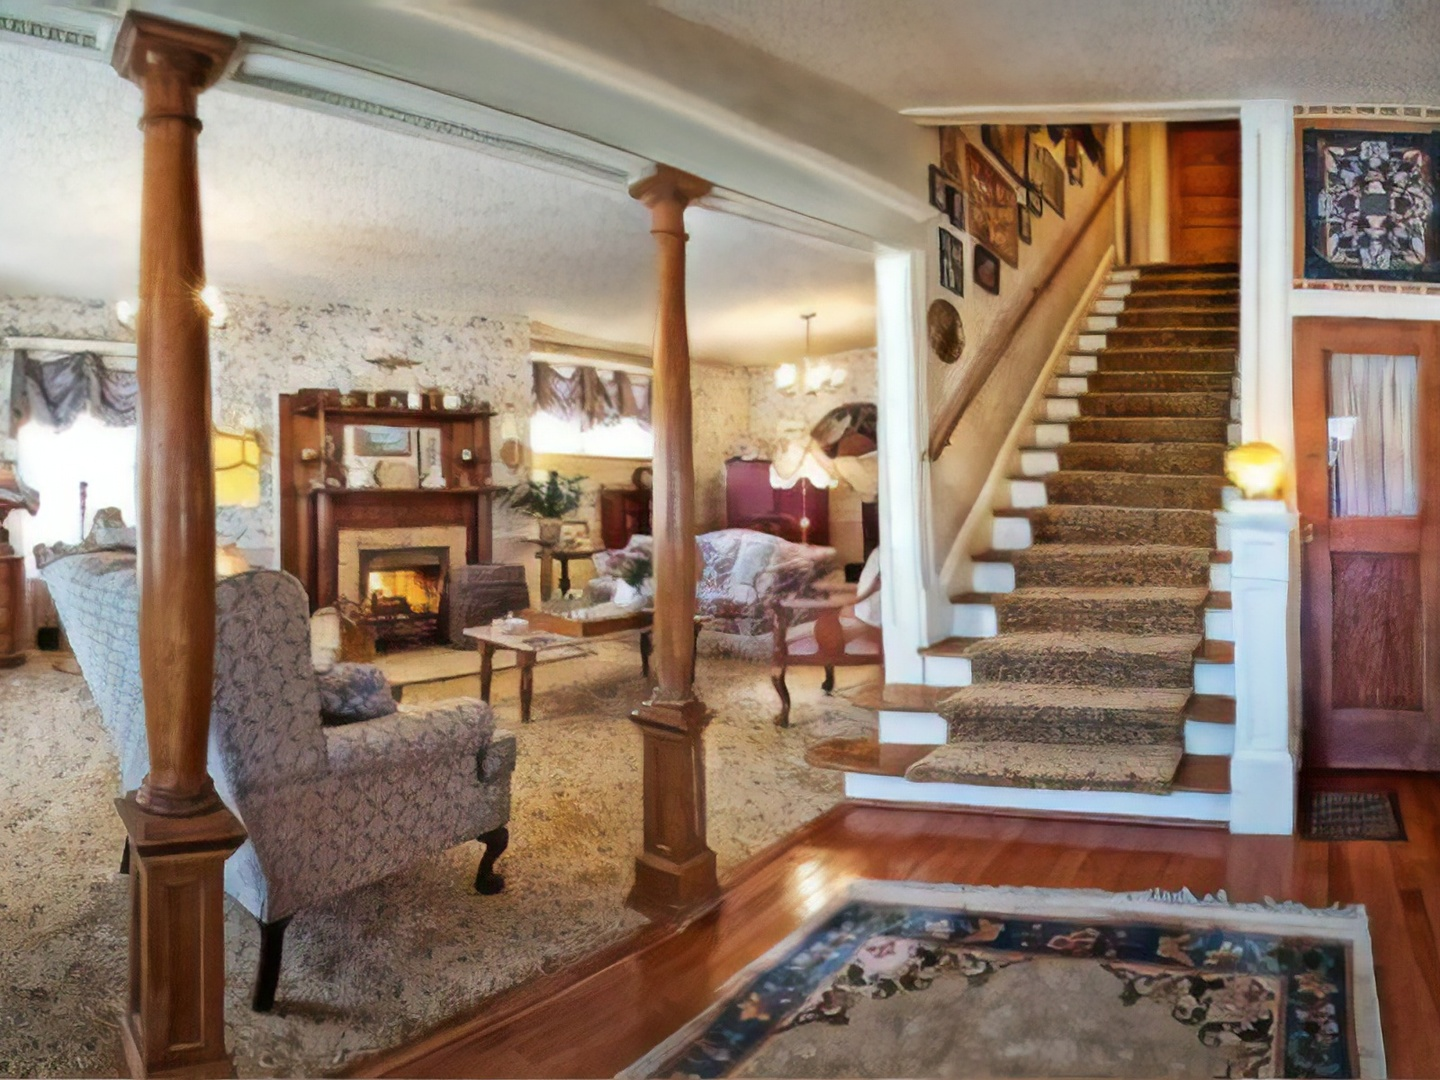 A living room filled with furniture and a fireplace at Holden House 1902 Bed & Breakfast Inn.